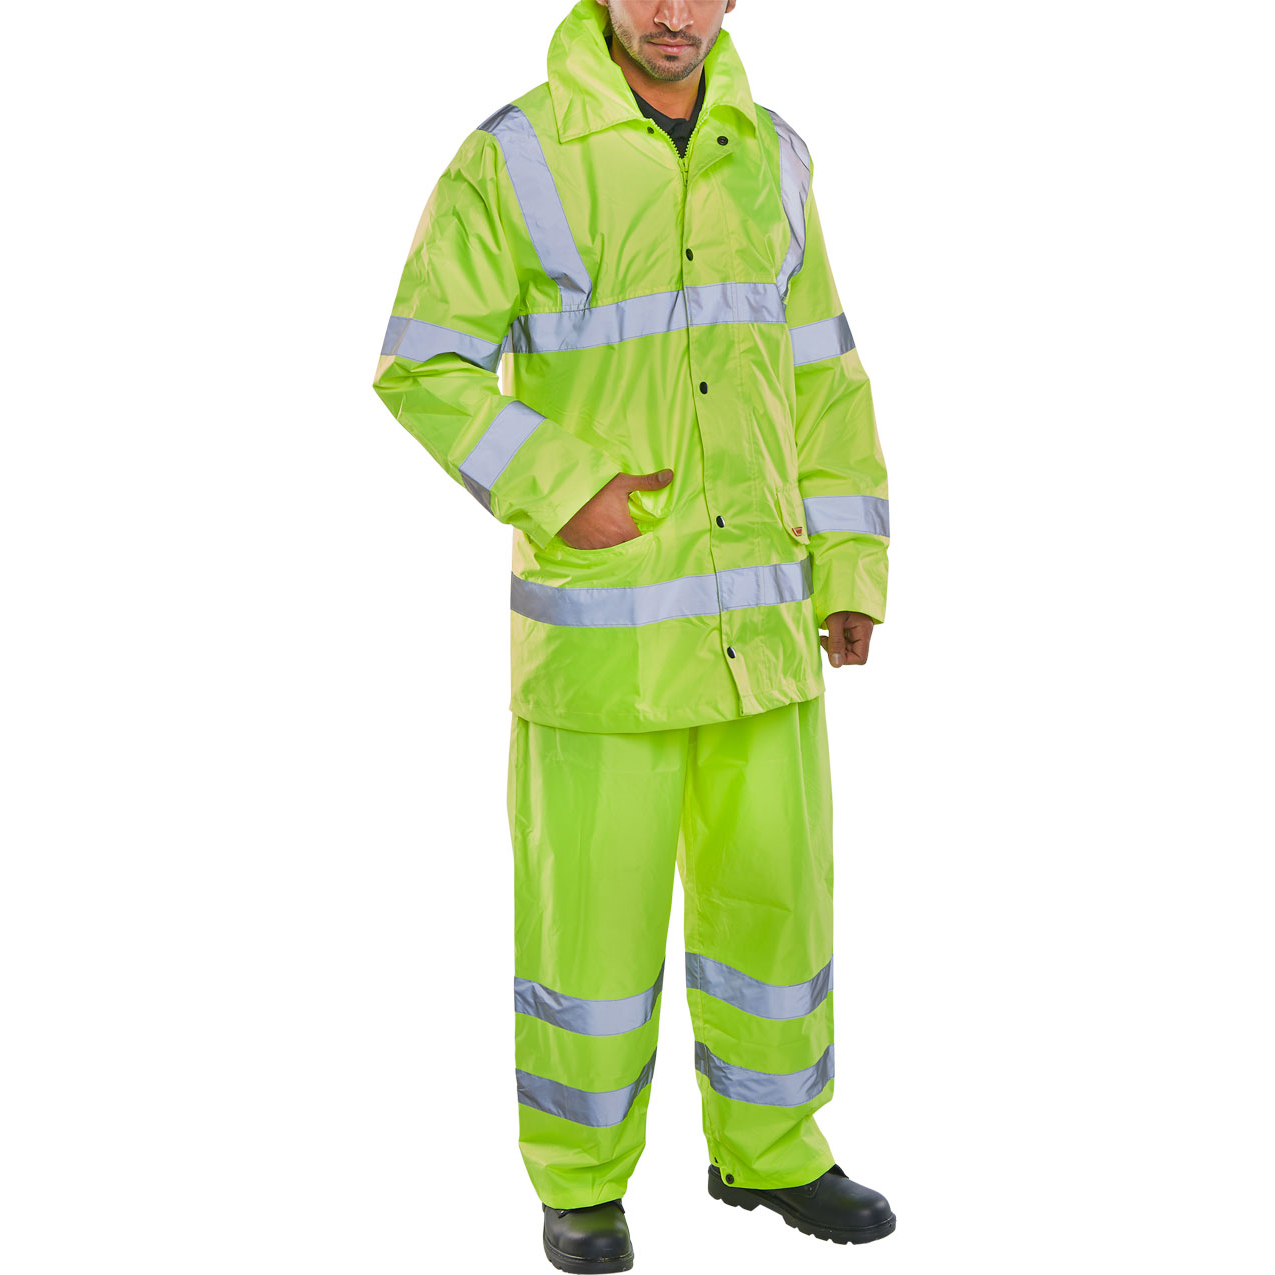 BSeen Hi-Vis L/Wt Suit Jkt/Trs EN ISO 20471 EN 343 3XL Saturn Yellow Ref TS8SYXXXL Up to 3 Day Leadtime